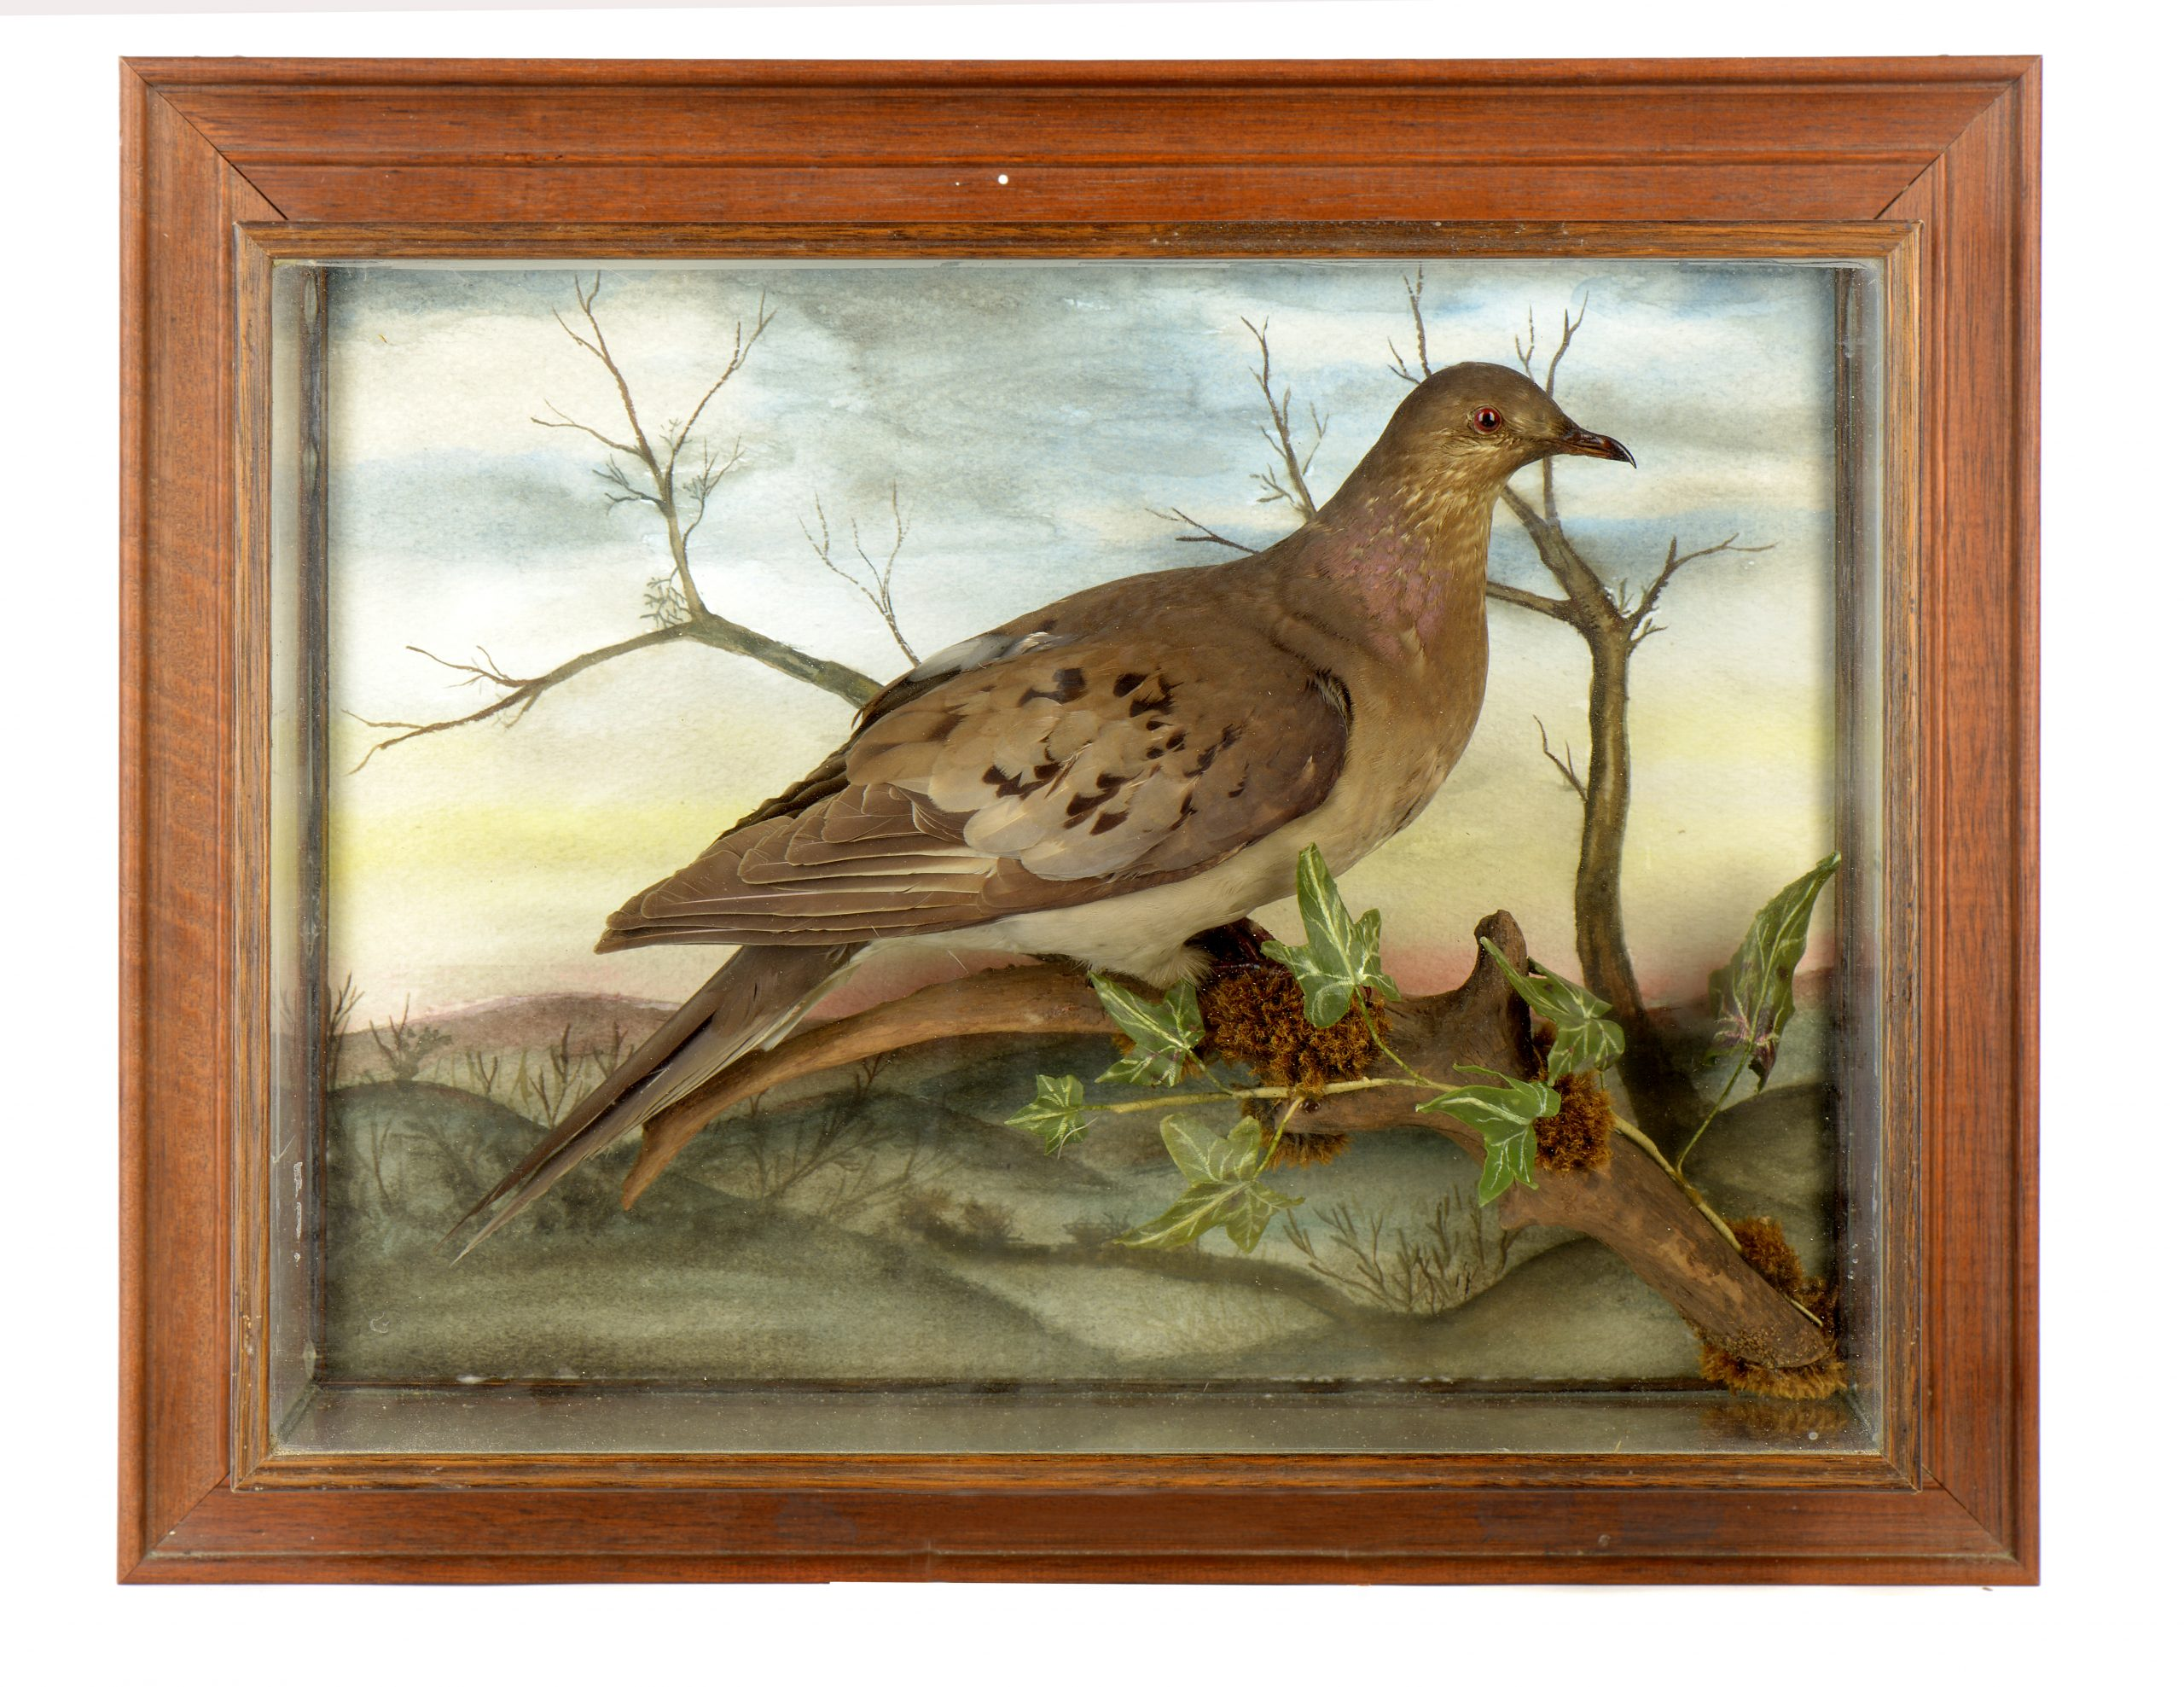 Exceptionally rare example of the Passenger Pigeon